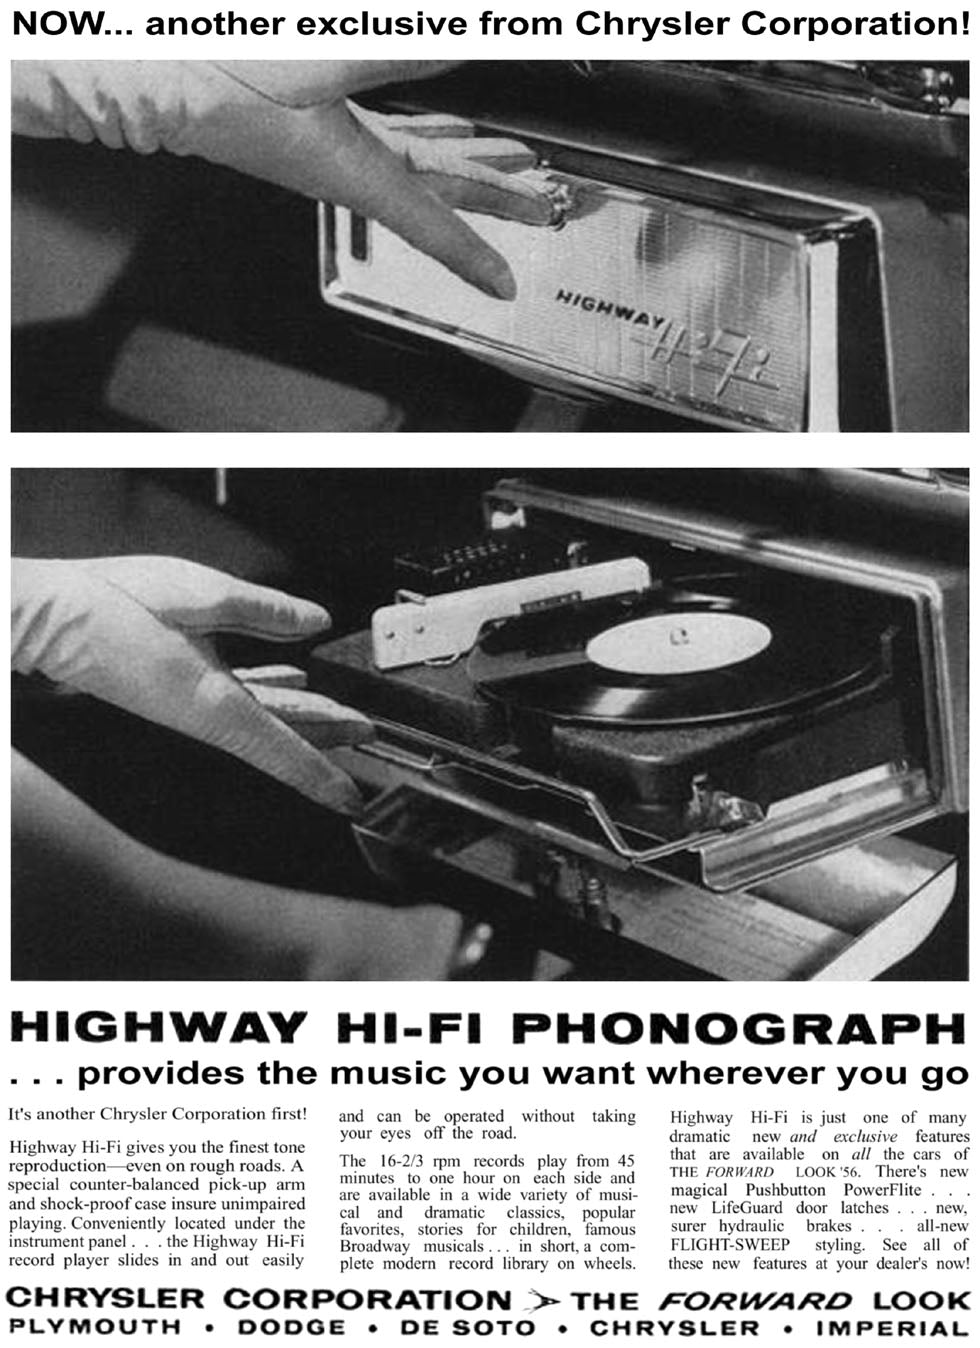 High Fidelity became a national craze in the 1950s. And experimentation spilled over to automobiles. But until 1956, it was only radios. You still couldn't play your own recorded music in your car.